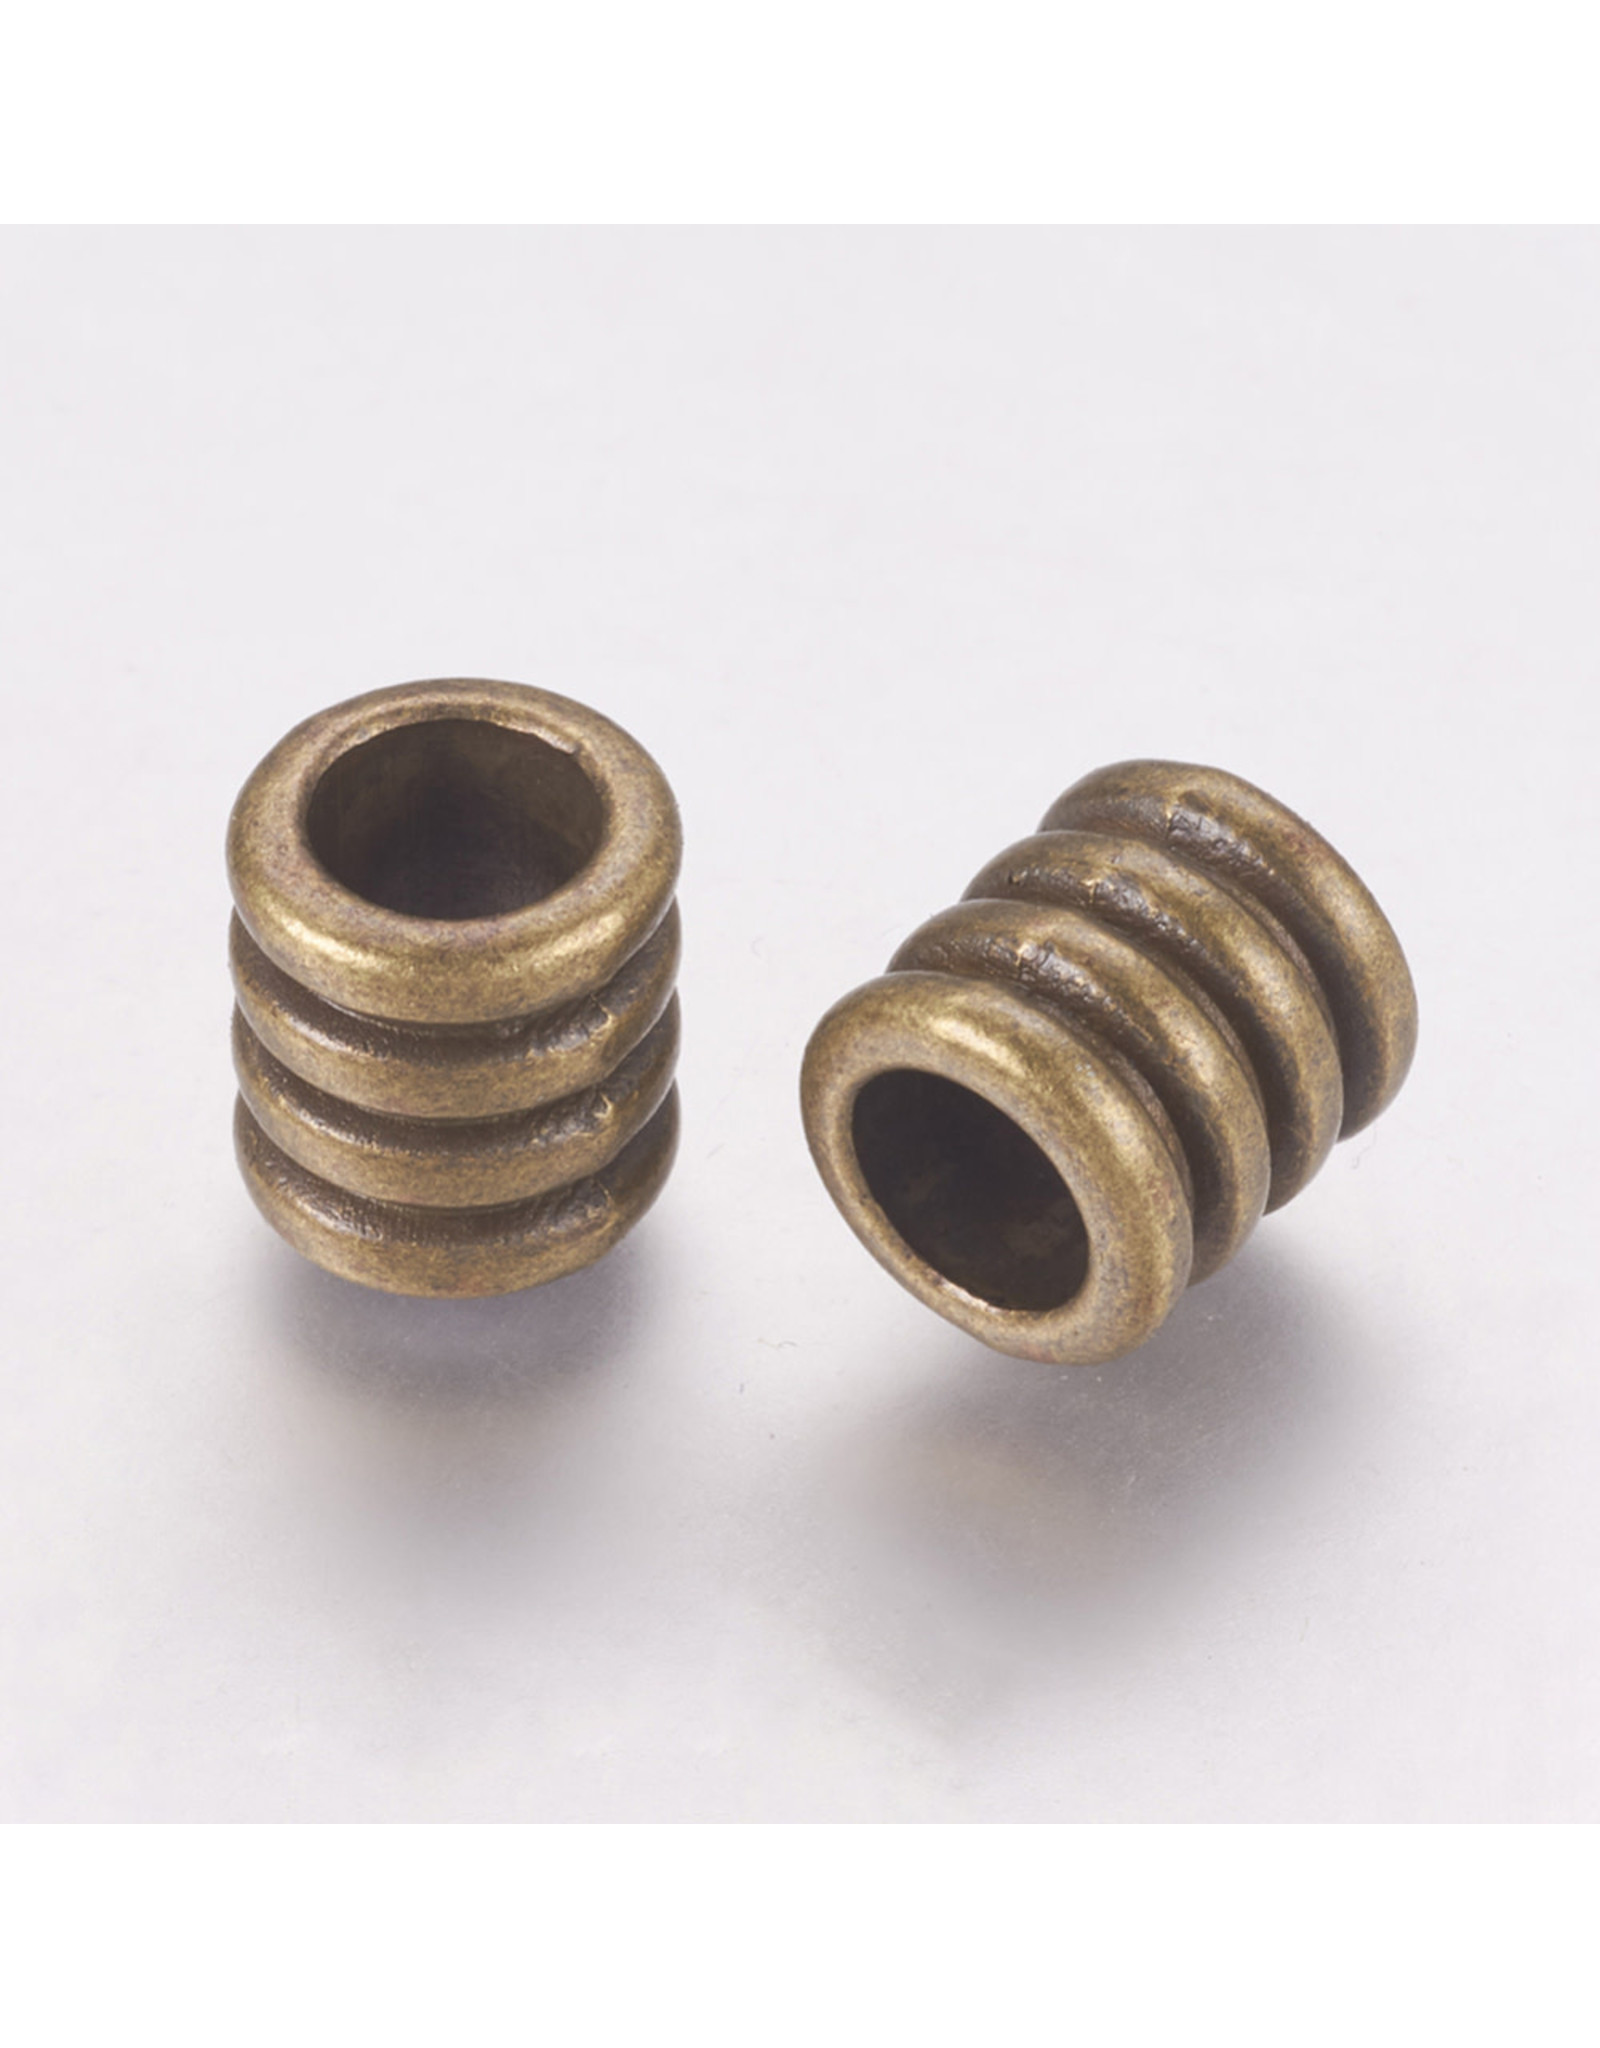 Grooved Tube Bead  Antique  Brass  9.5x9mm  x10  NF